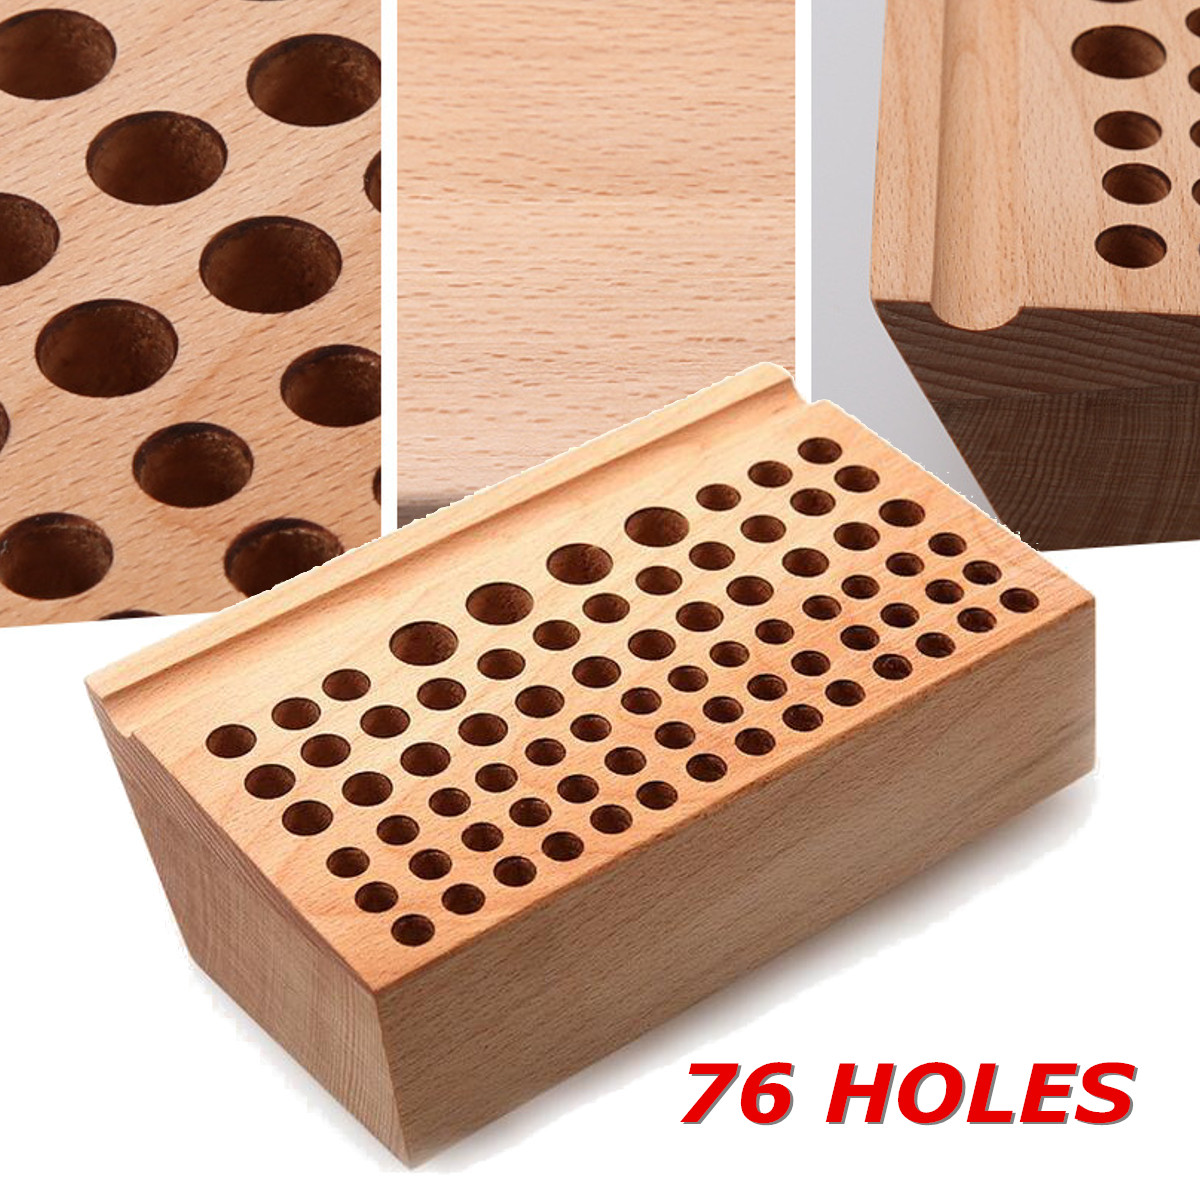 Wooden Stamp Stand Holder 76 Leather Punch Wooden Holding Organiser Wood Tool Stand For Storing leathercraft